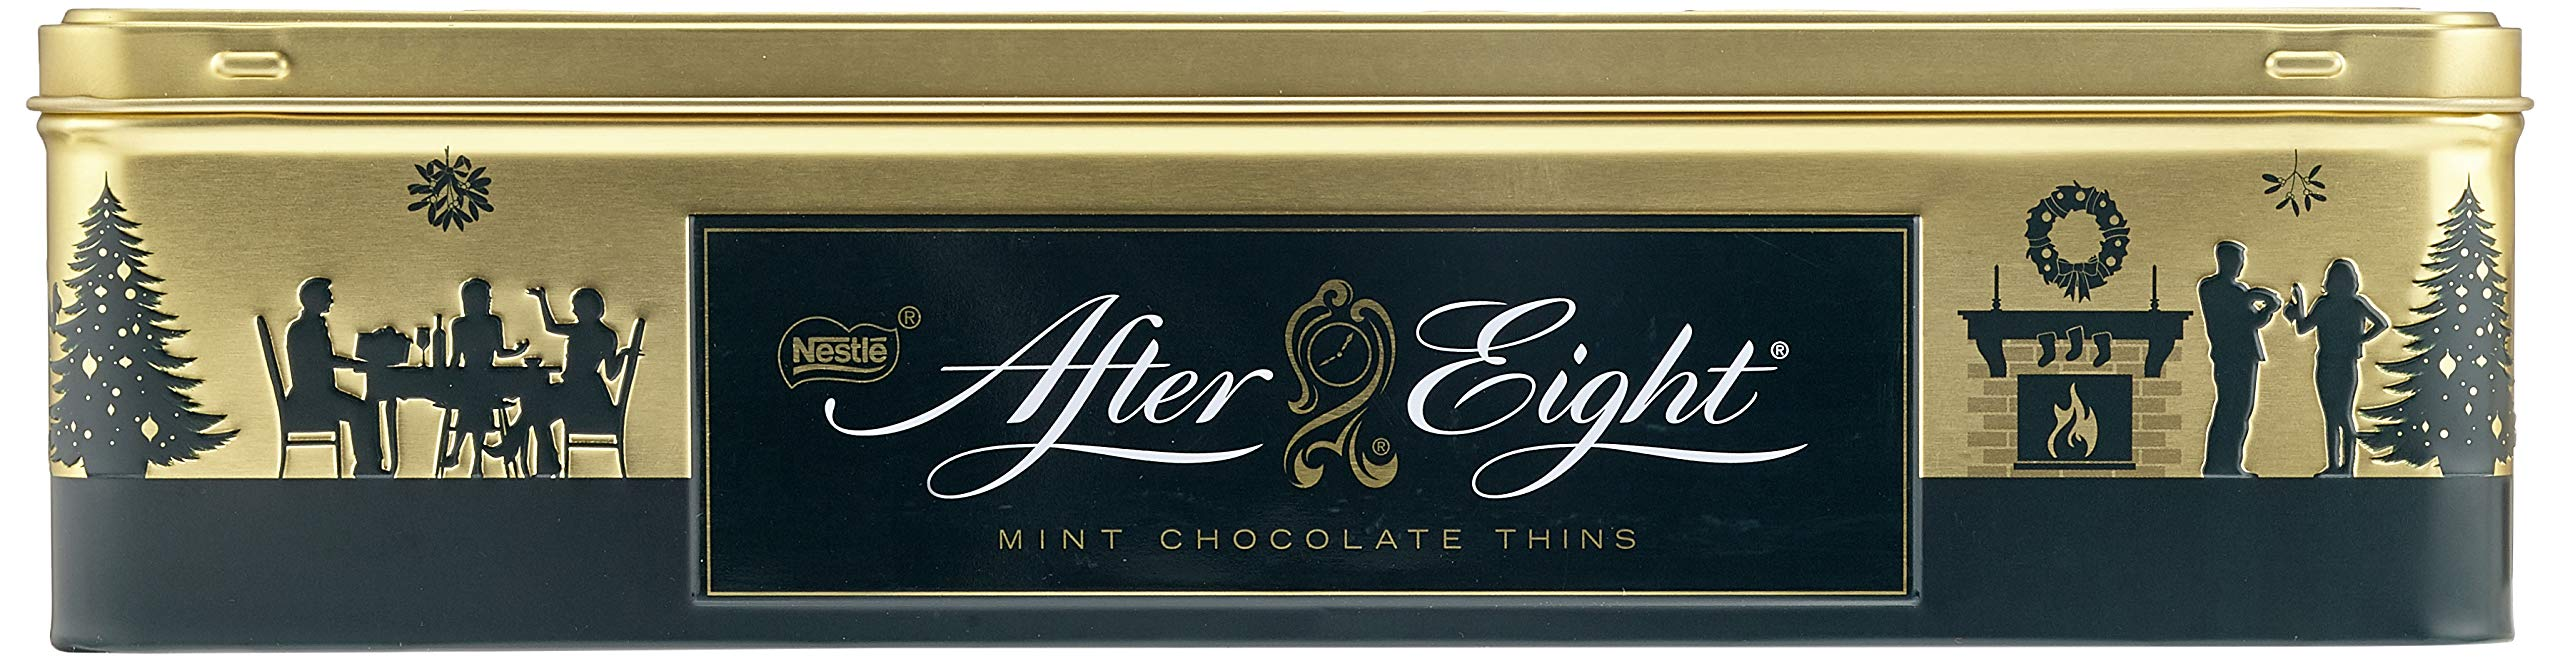 Nestle After Eight Mints Tin 400g